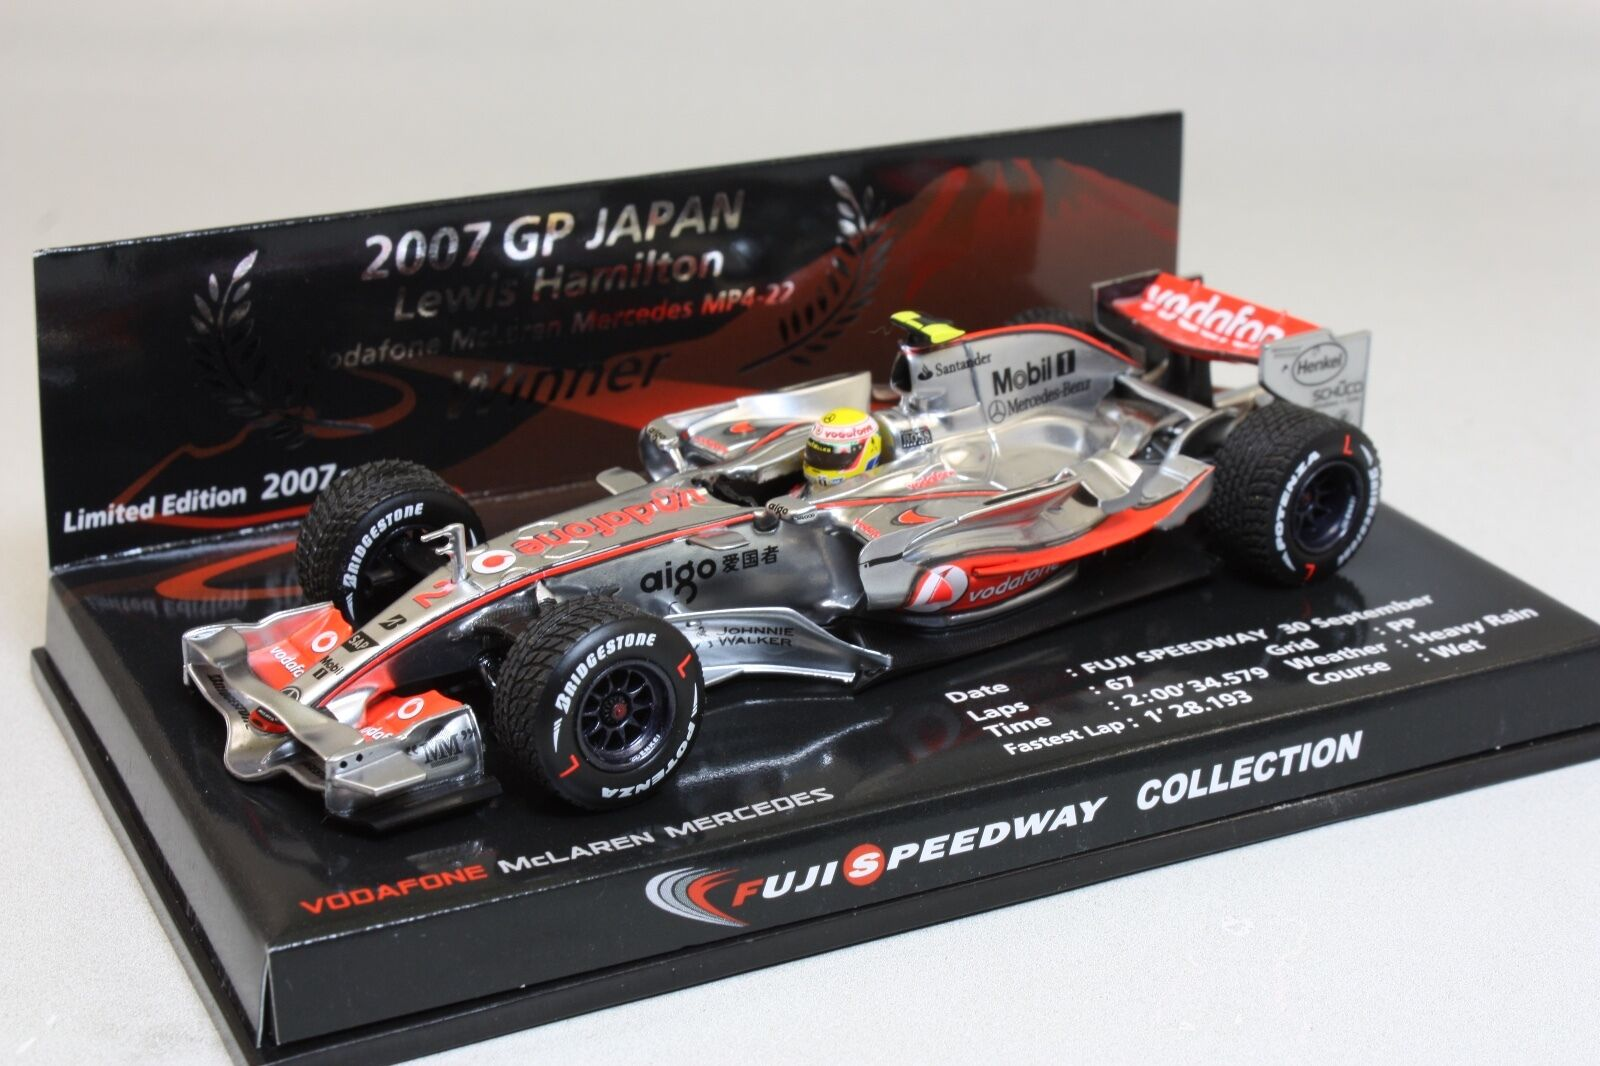 Lewis Hamilton McLaren Mercedes MP4-22 1 43 Fuji Speedway collection 2007